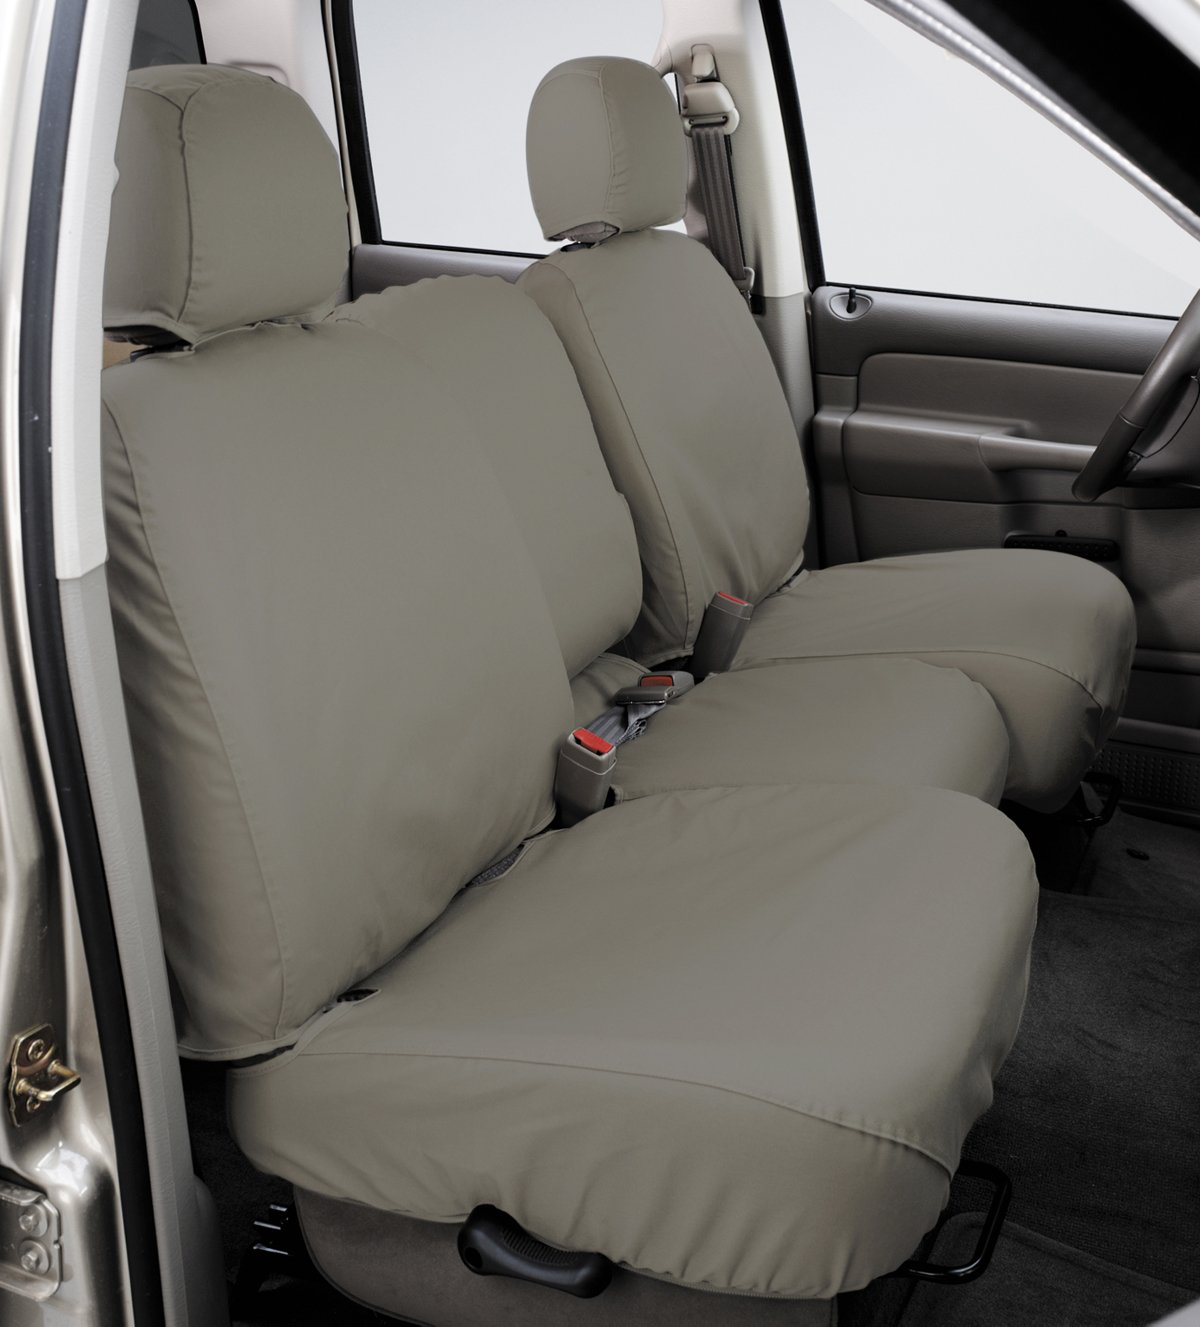 Polycotton Misty Grey SS7420PCCT Covercraft SeatSaver Second Row Custom Fit Seat Cover for Select Subaru Forester Models